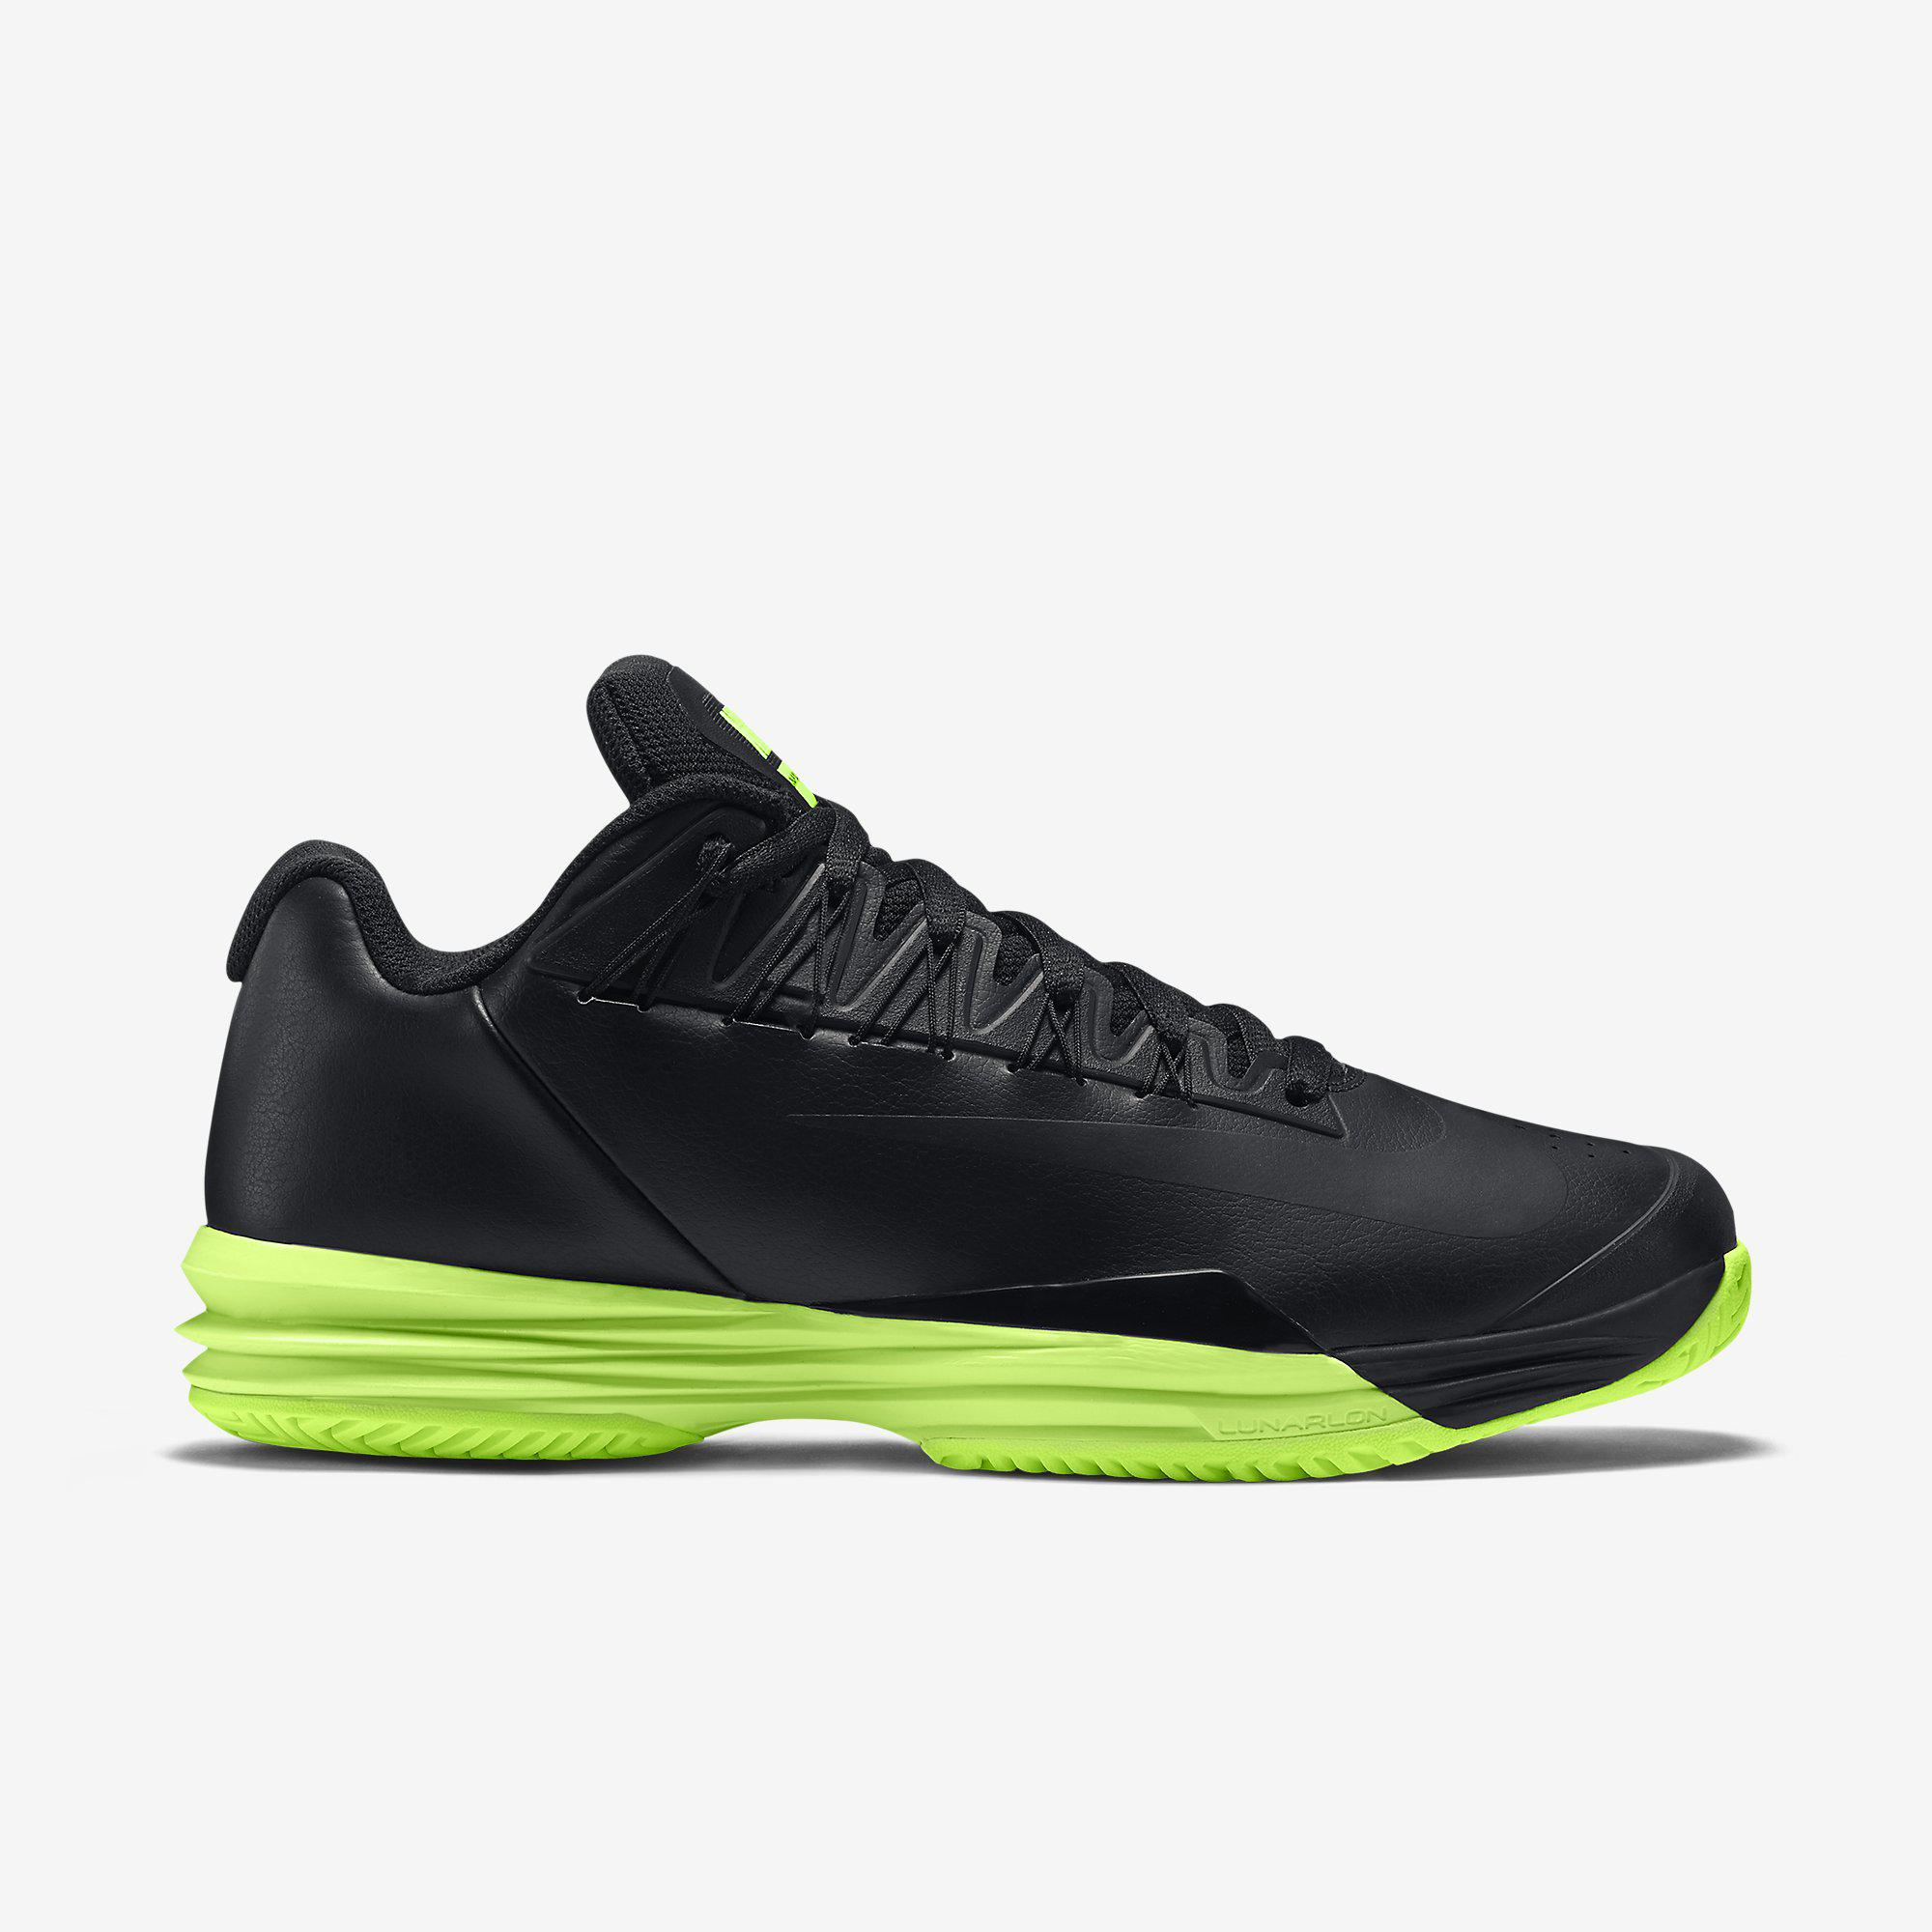 Nike Lunar Speed Tennis Shoes